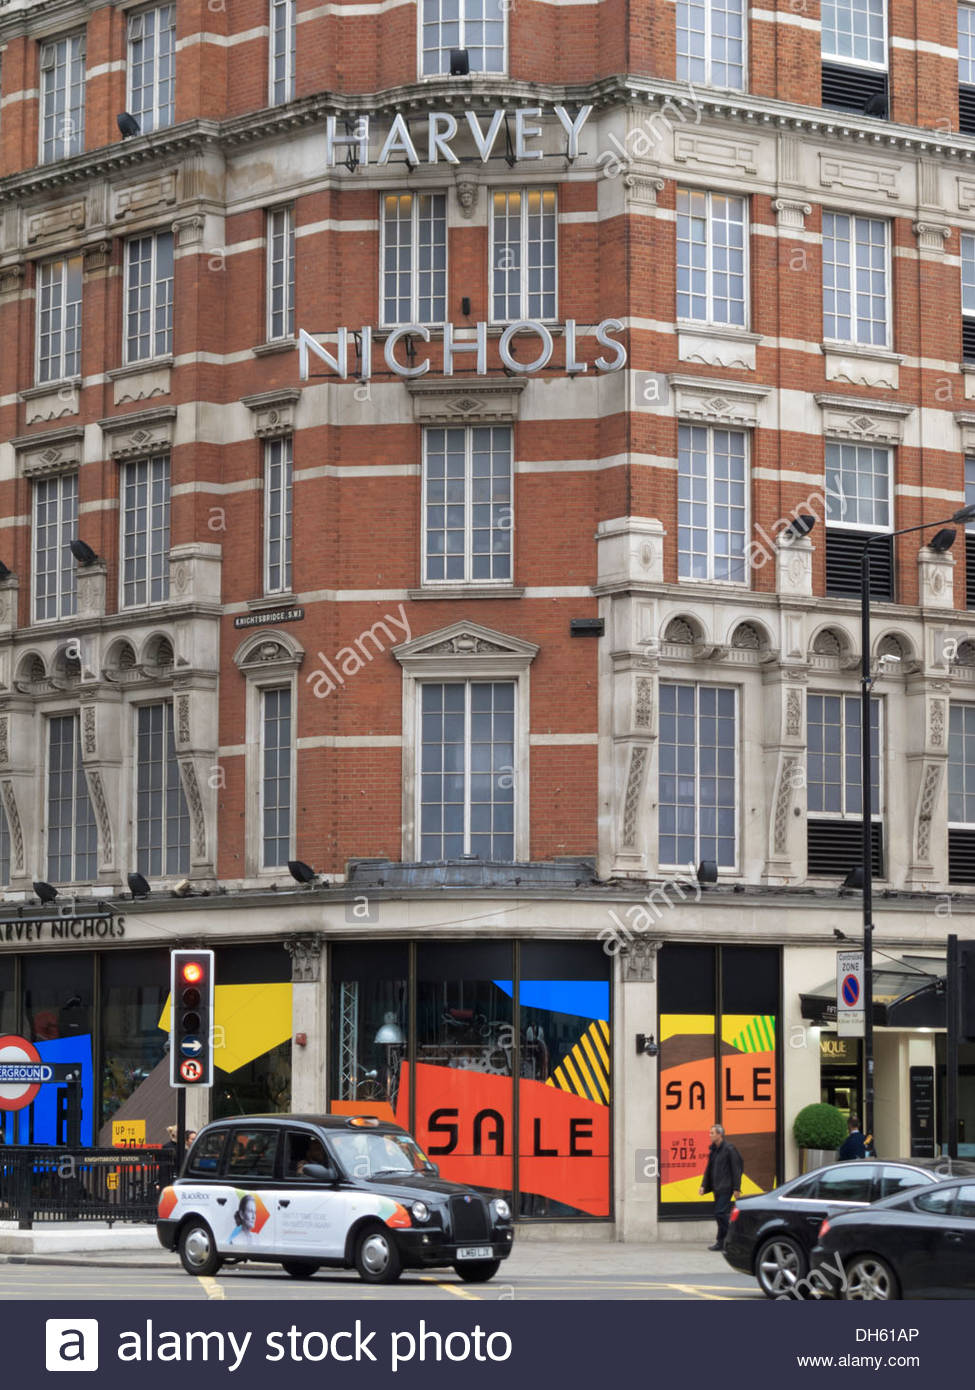 Harvey Nichols Flagship Store Sloane Street Knightsbridge London England - Stock Image